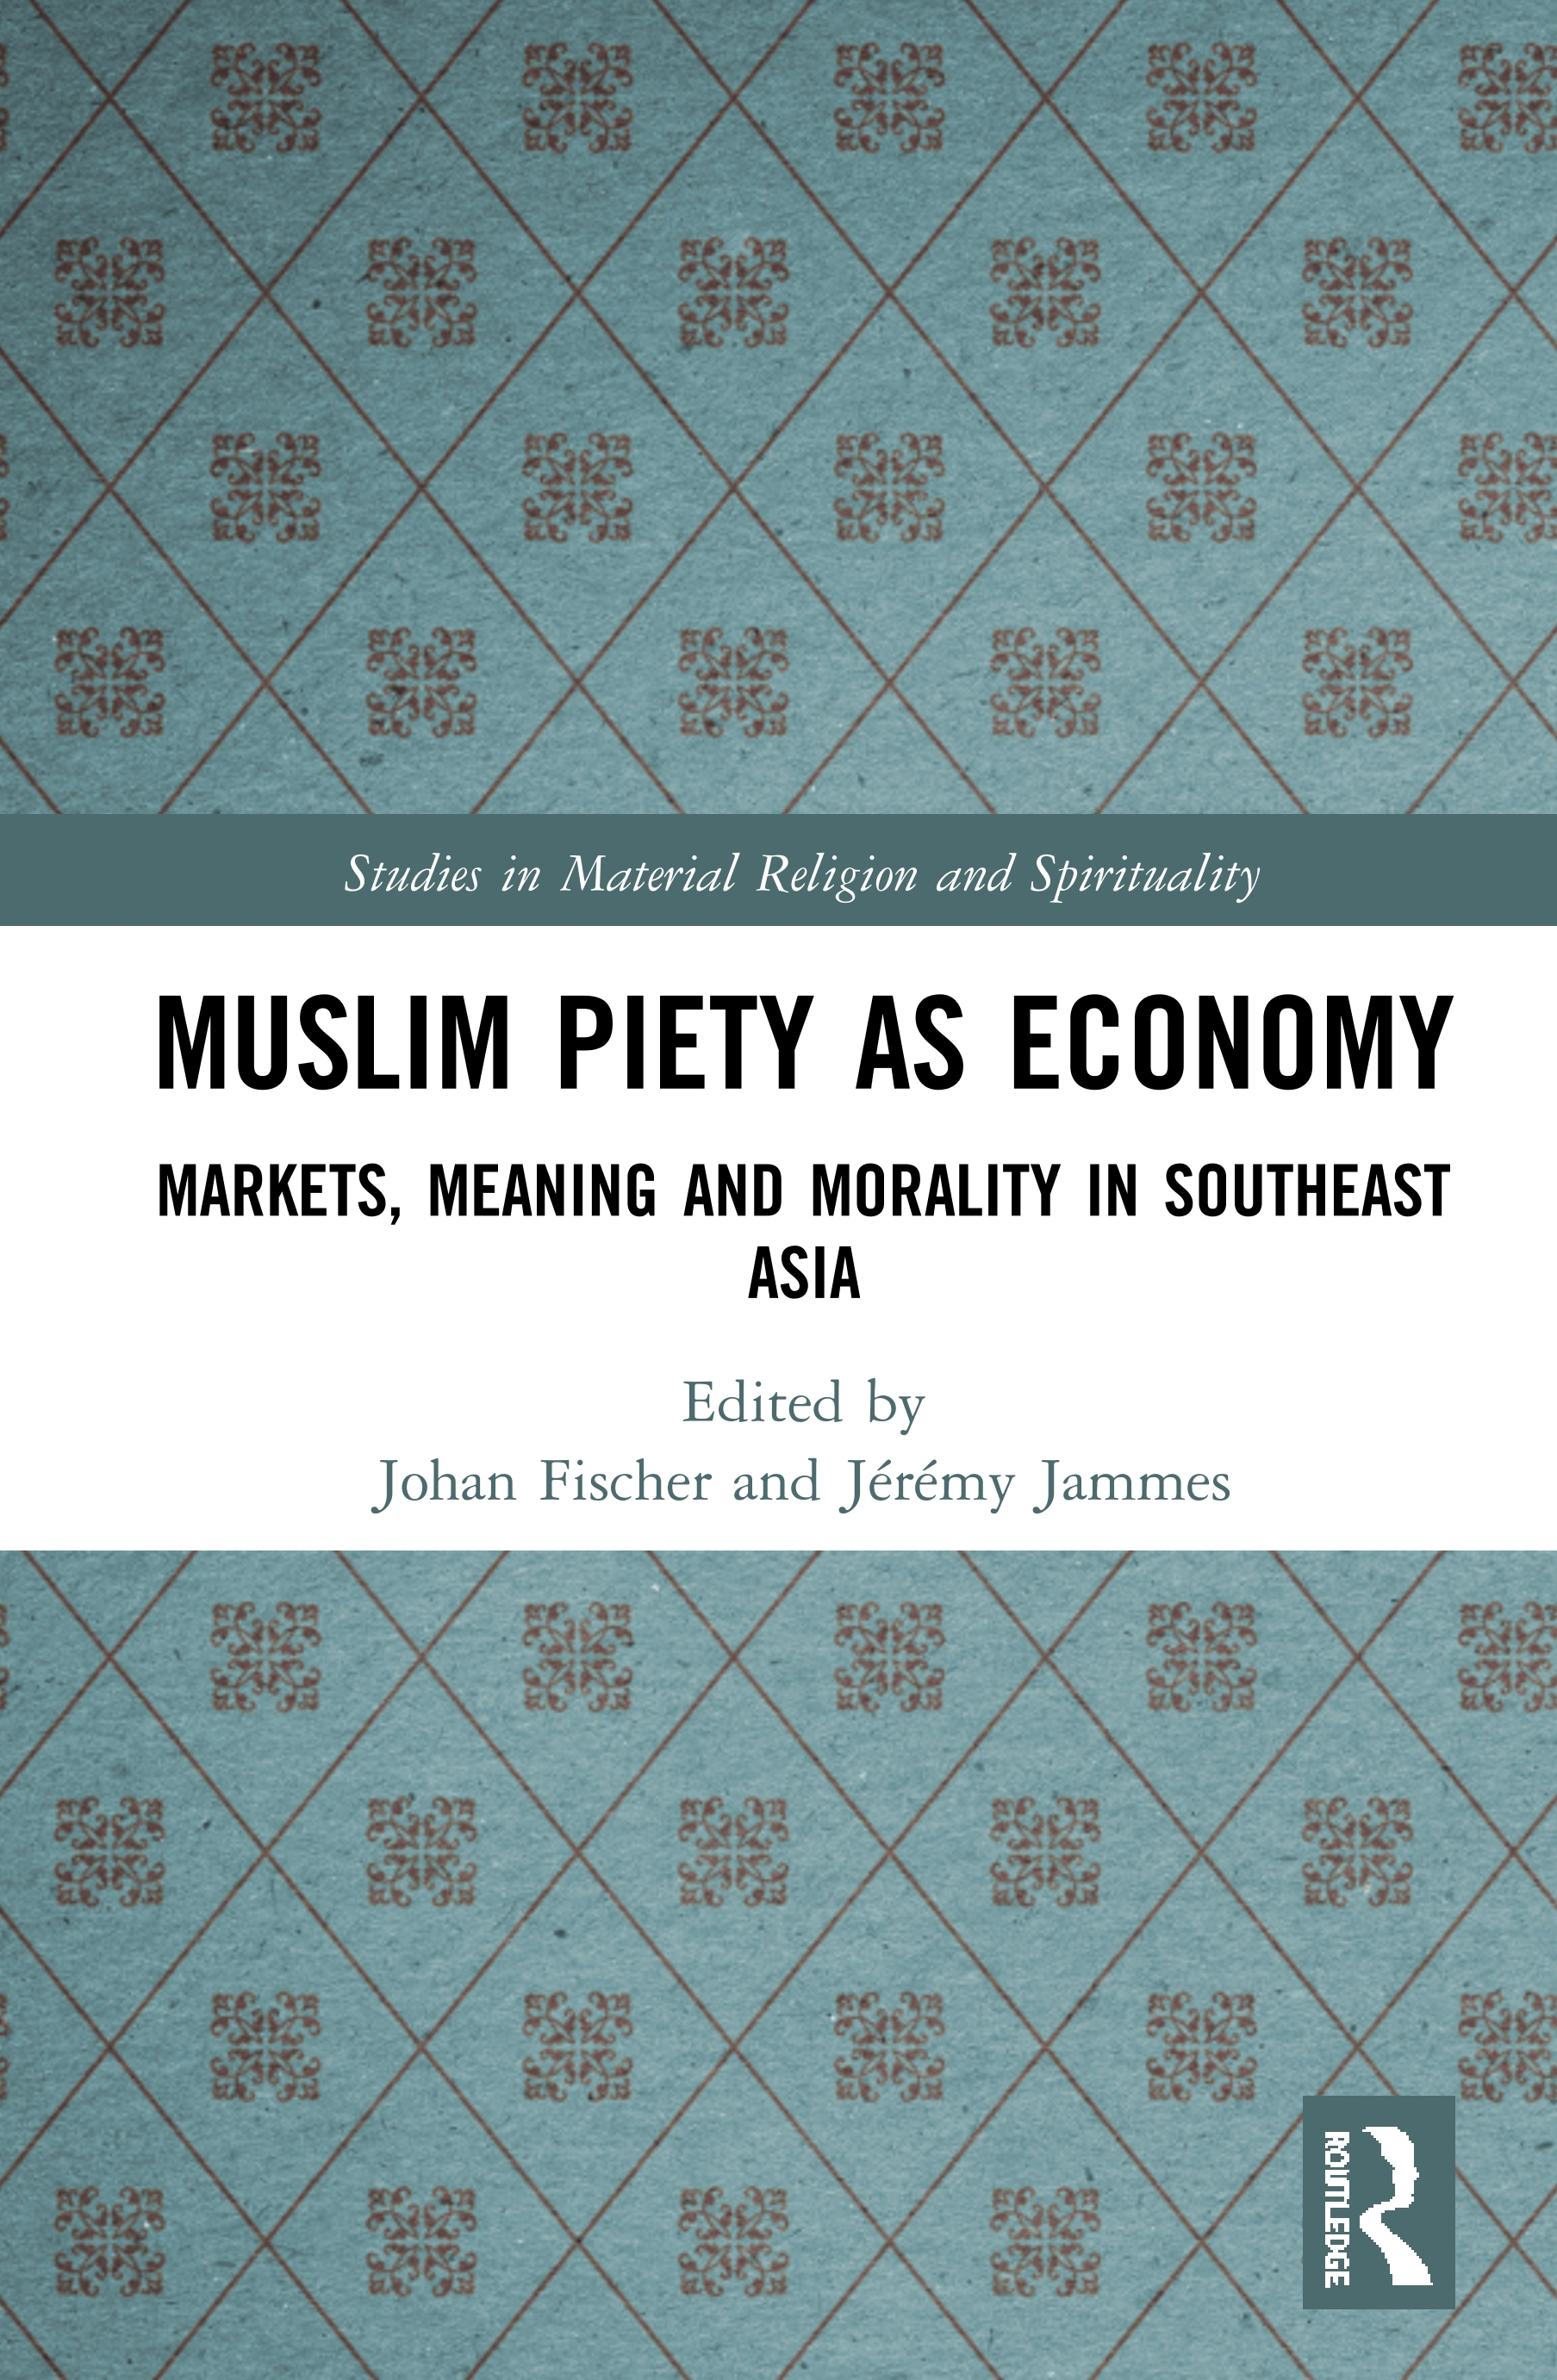 Muslim Piety as Economy: Markets, Meaning and Morality in Southeast Asia book cover